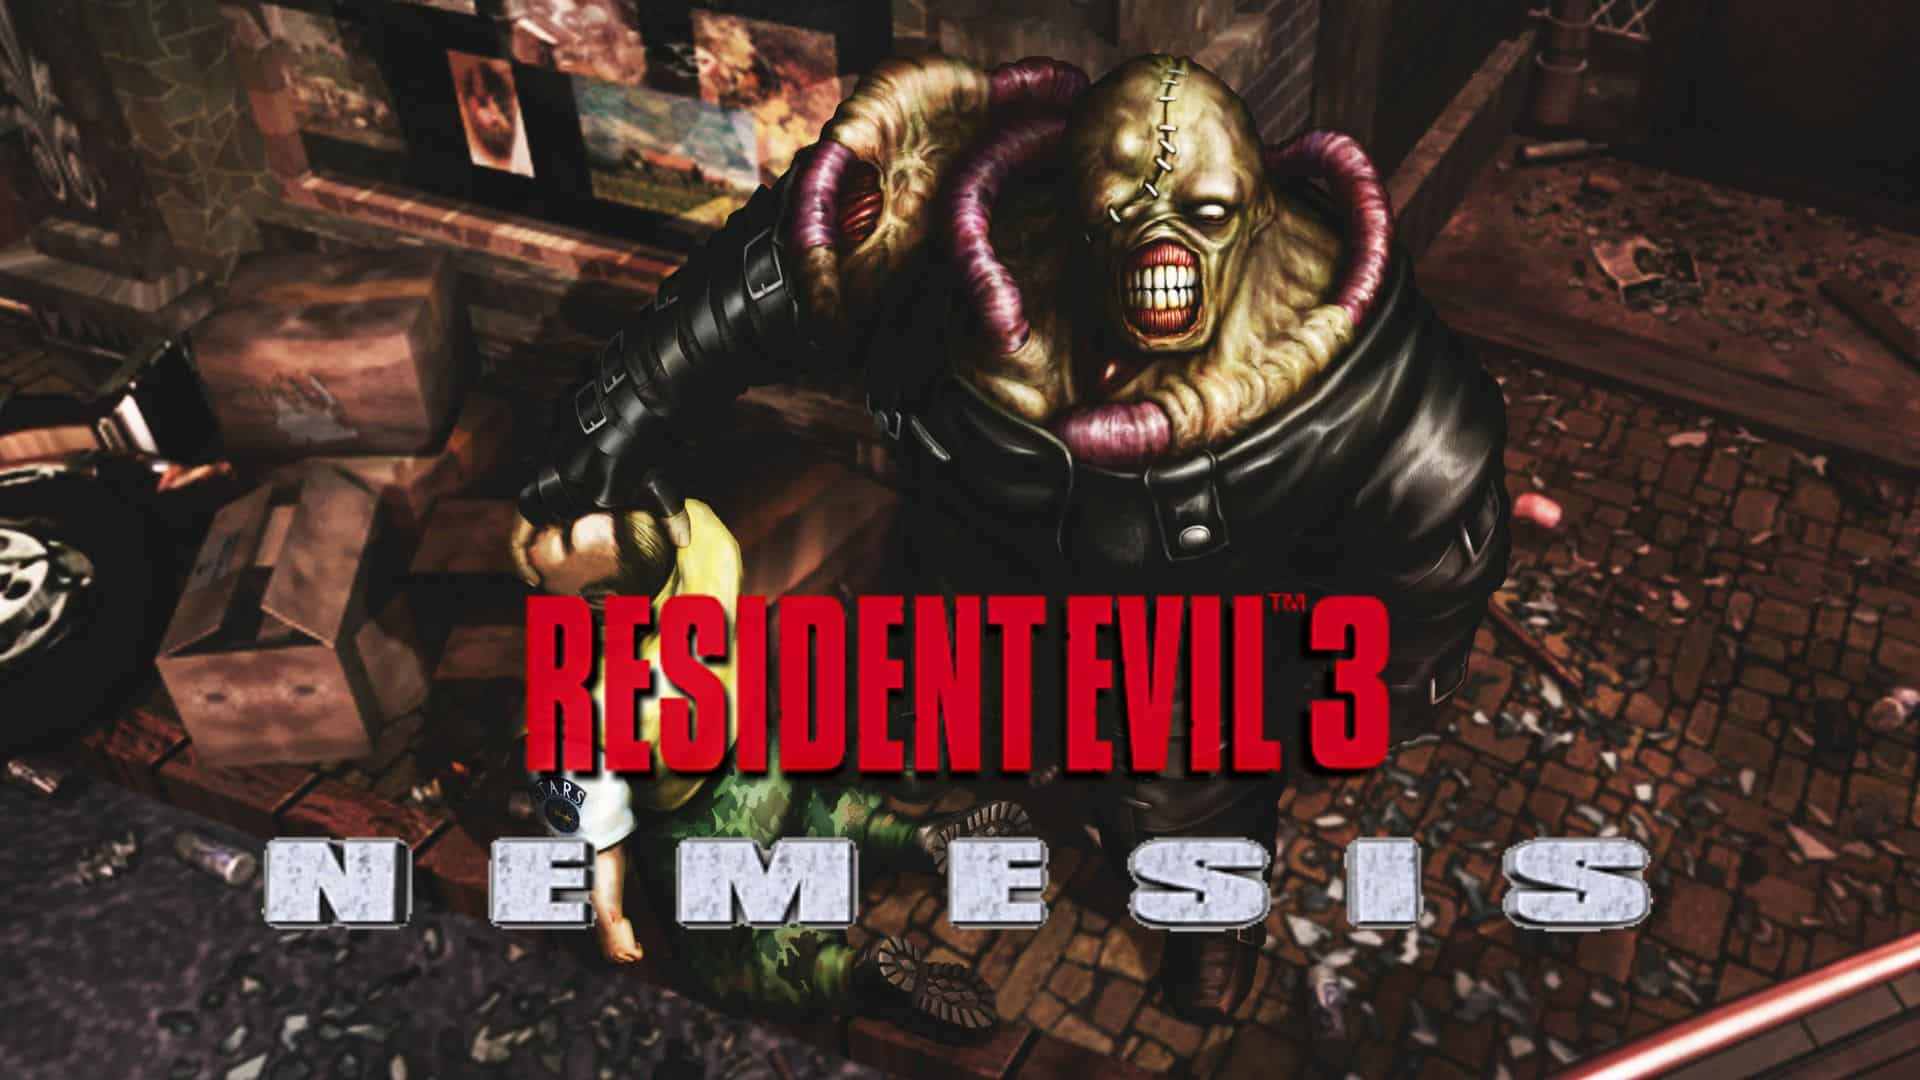 Resident Evil - All Main Games Ranked From Worst To Best